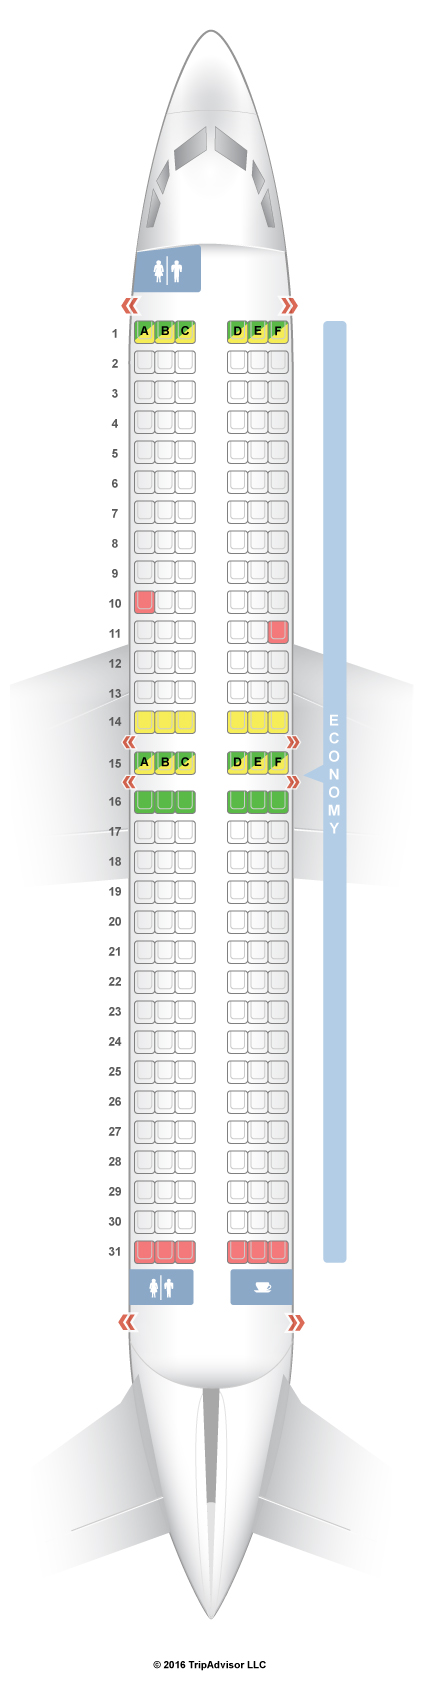 Seatguru Seat Map Norwegian Boeing 737 800 738 Seatguru Spirit Airlines Qatar Airways